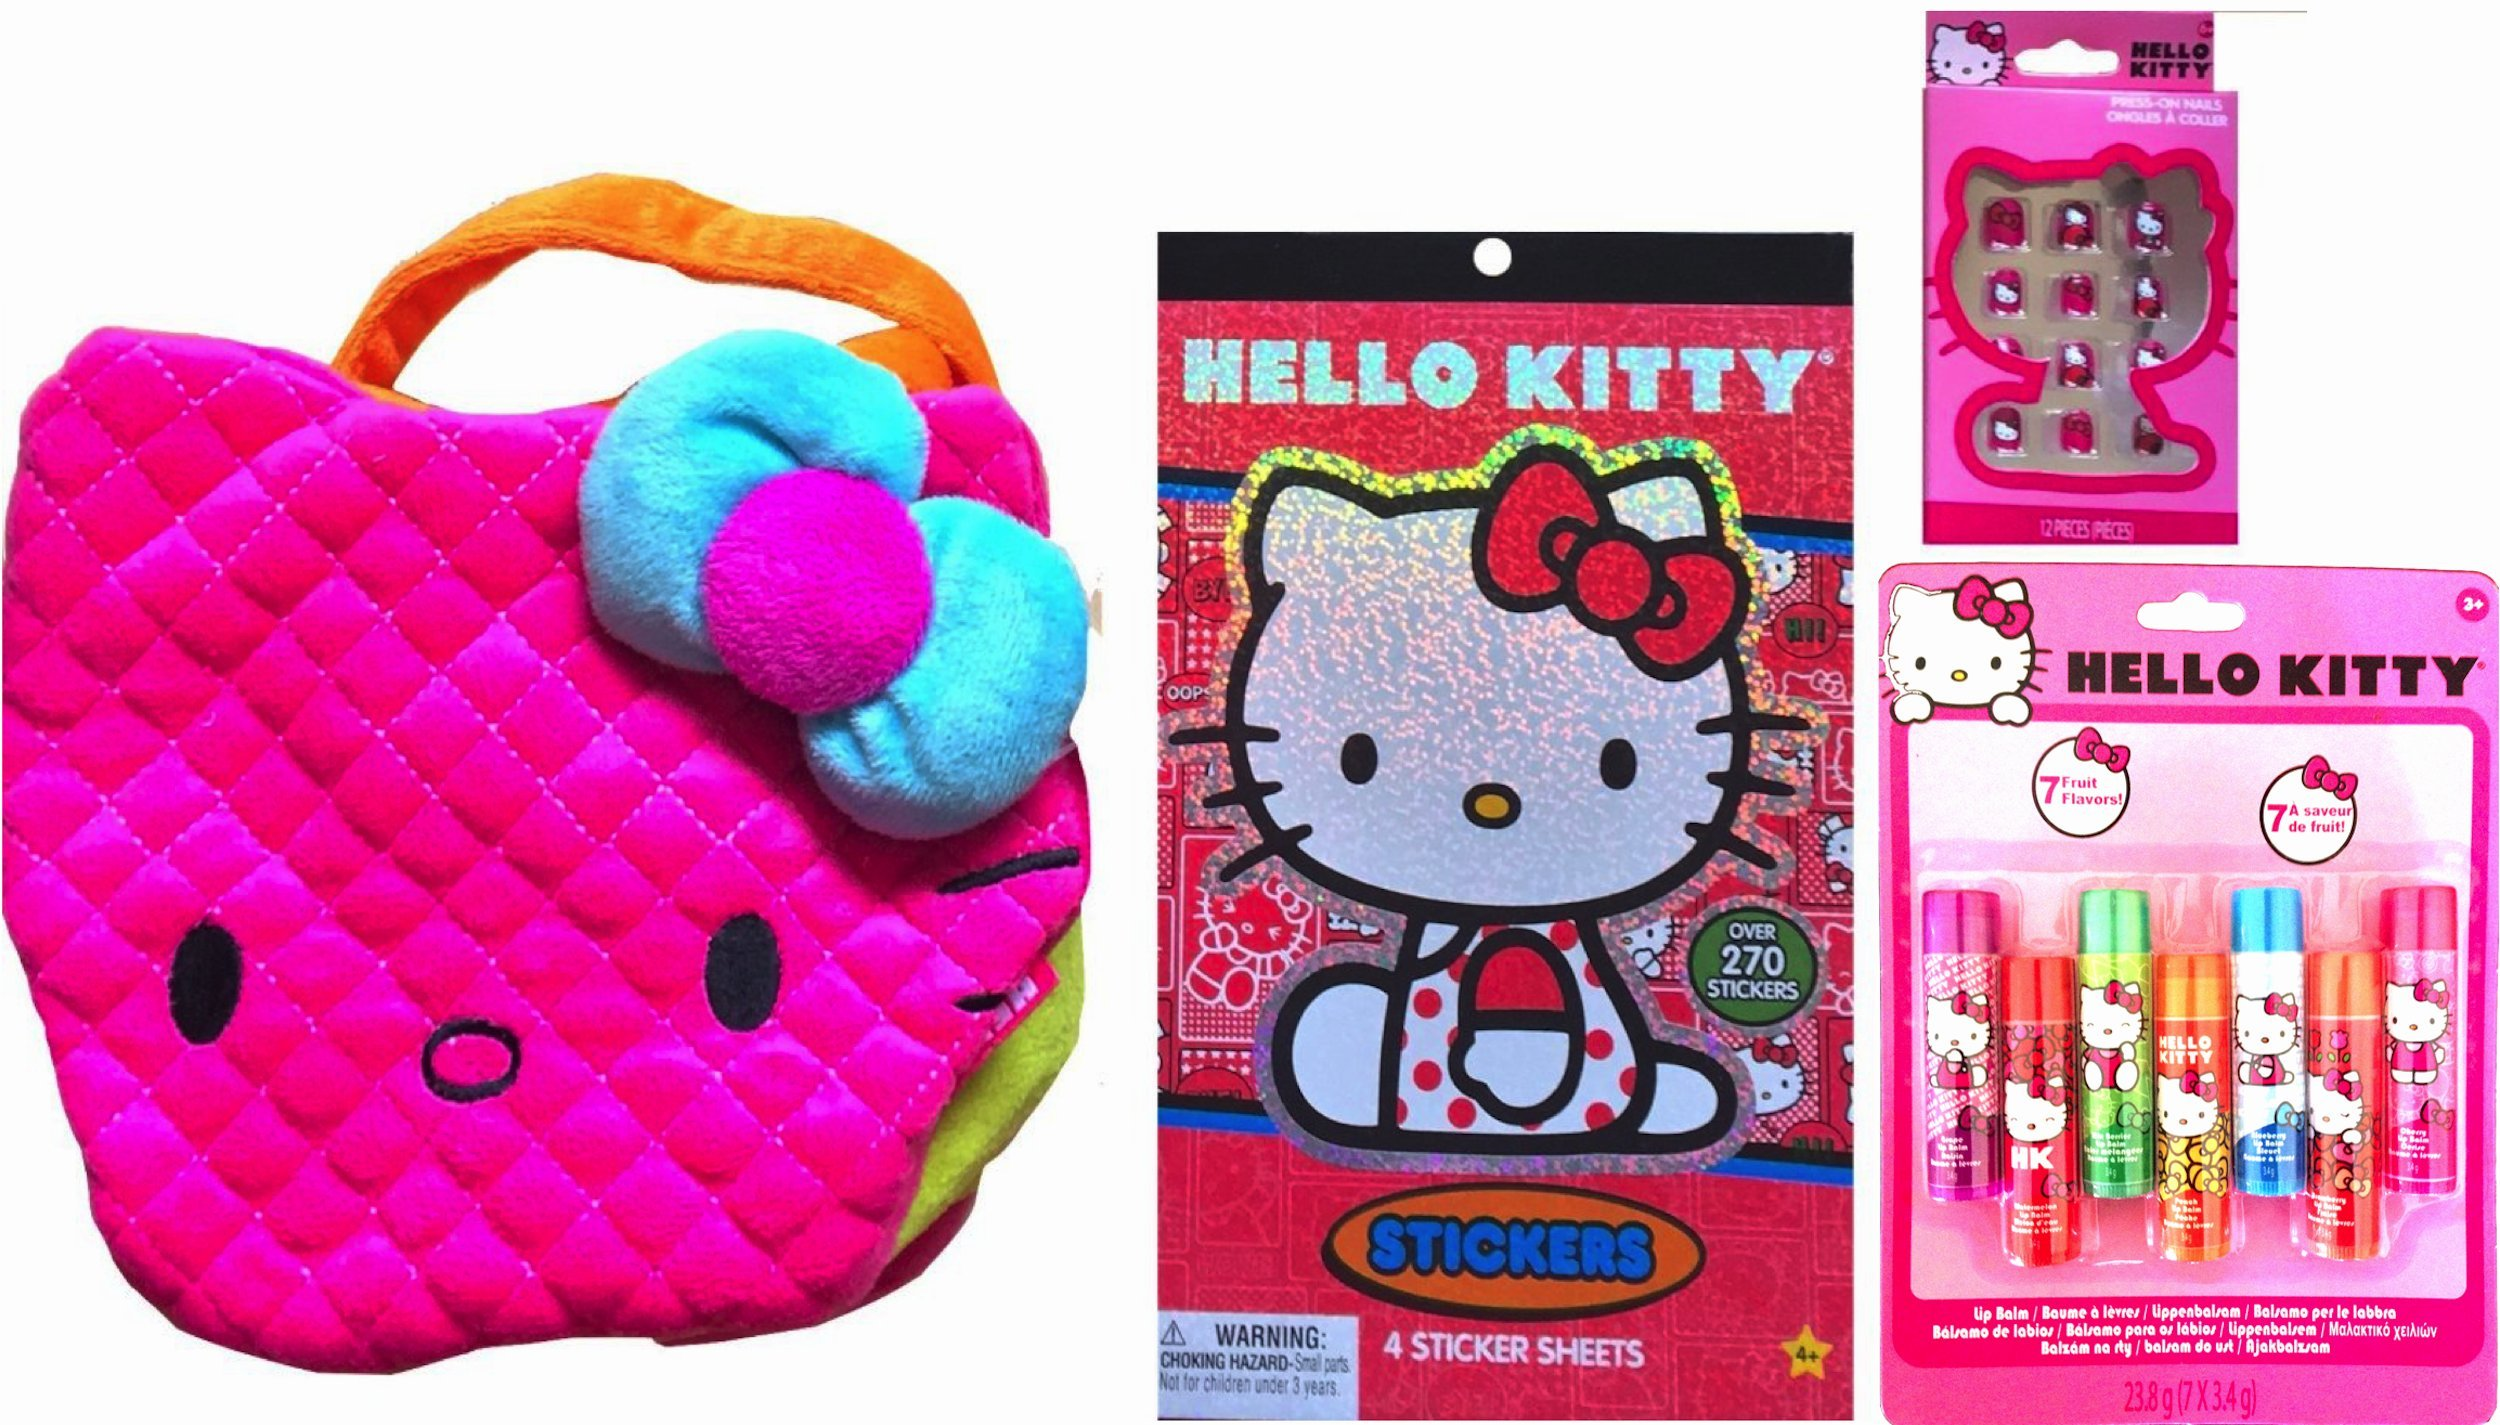 Hello Kitty Care Package Gift Set Pretend Play Cosmetic Kit Includes Hello Kitty Purse, Hello Kitty Sticker Book, Hello Kitty Press on Nails, Hello Kitty 6 Pack Flavored Lip Balms